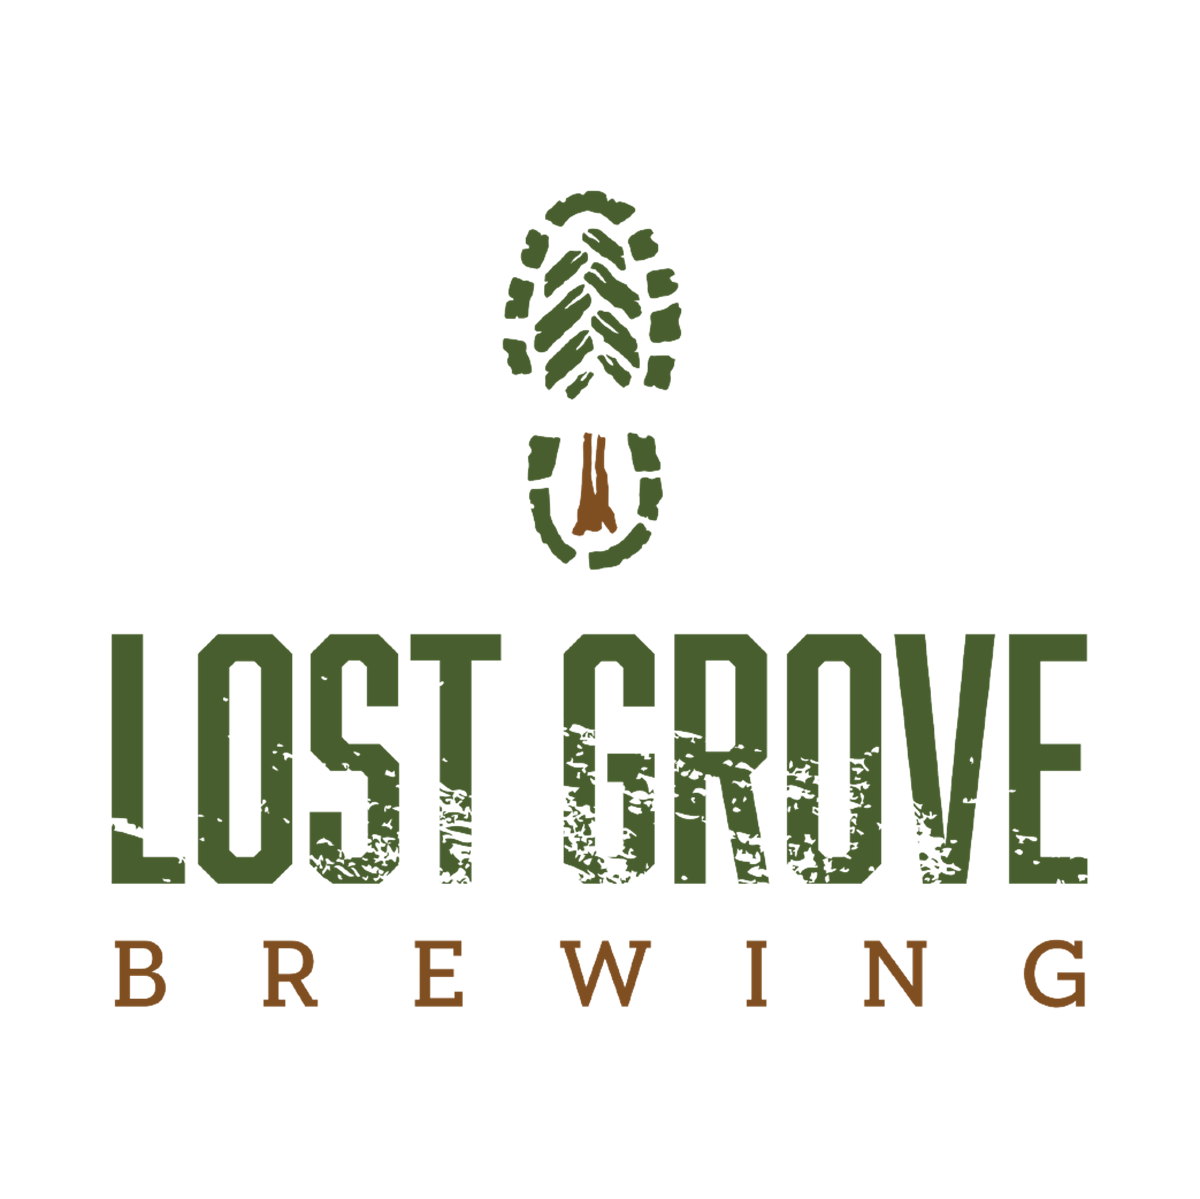 Lost Grove Brewing logo